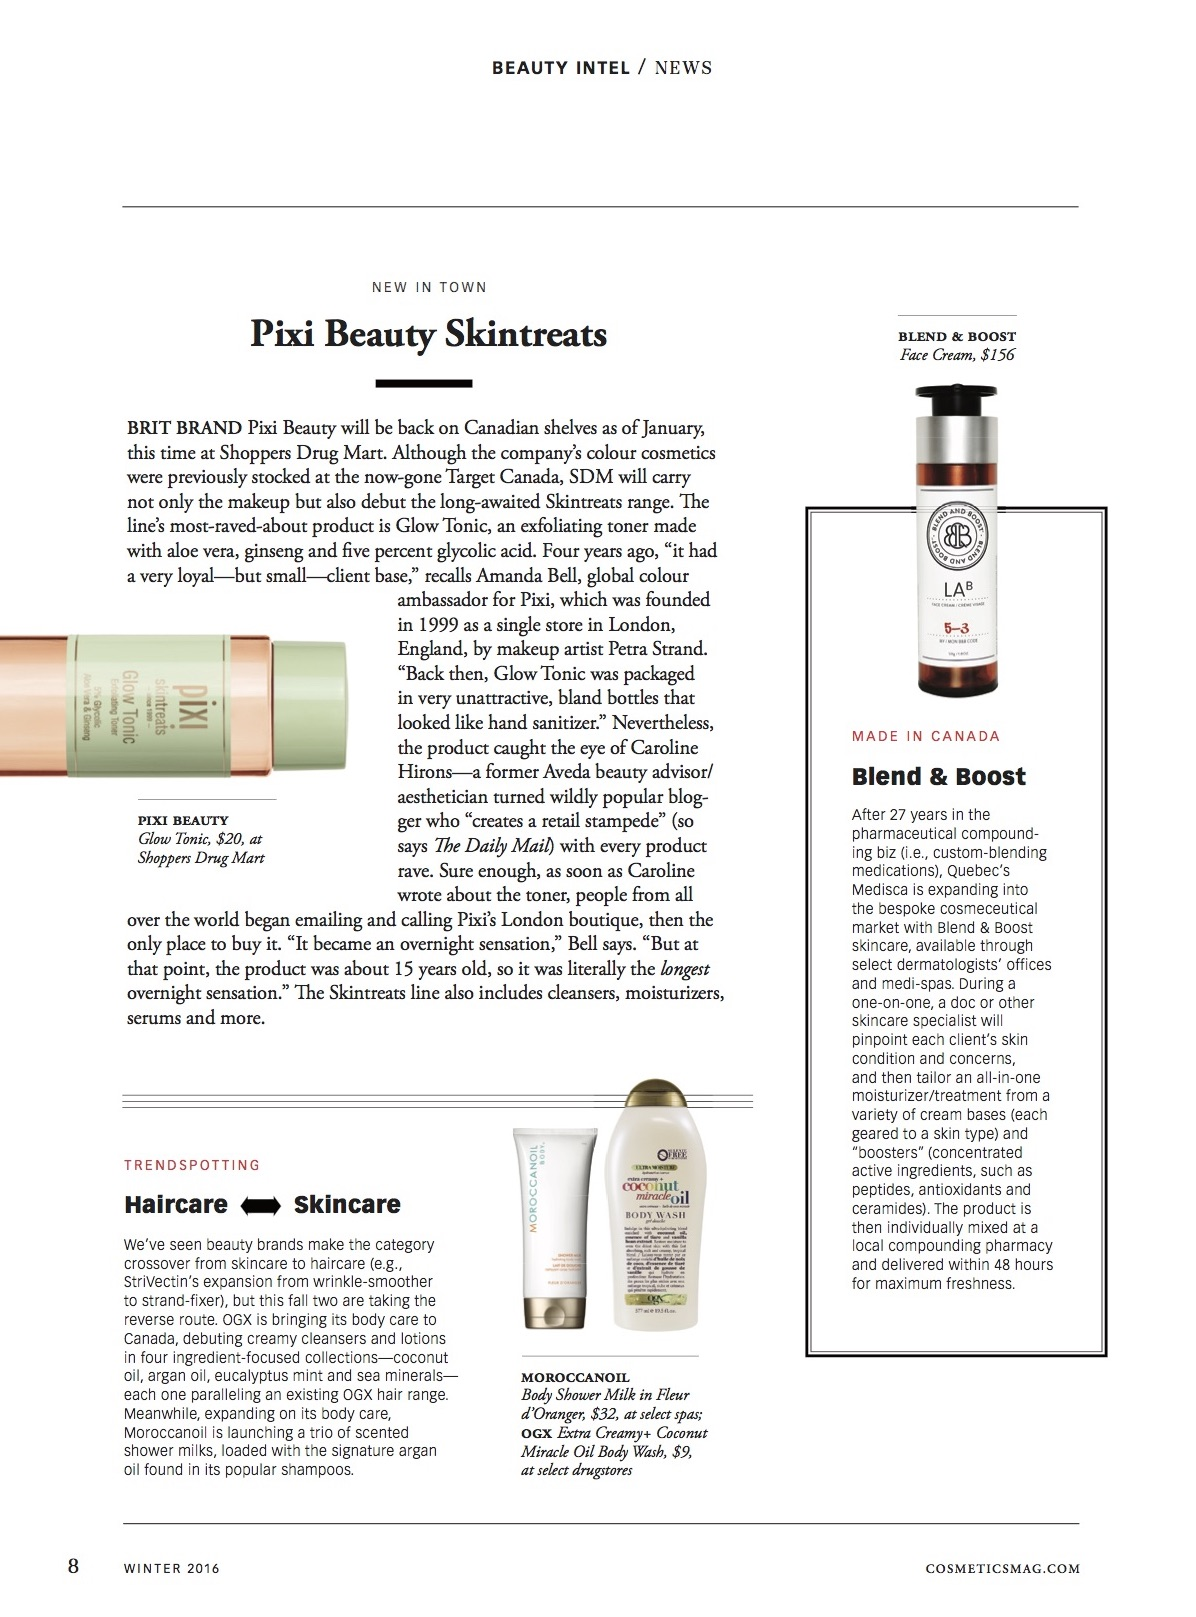 Cosmetics Magazine Feature of skin care line, Blend and Boost.